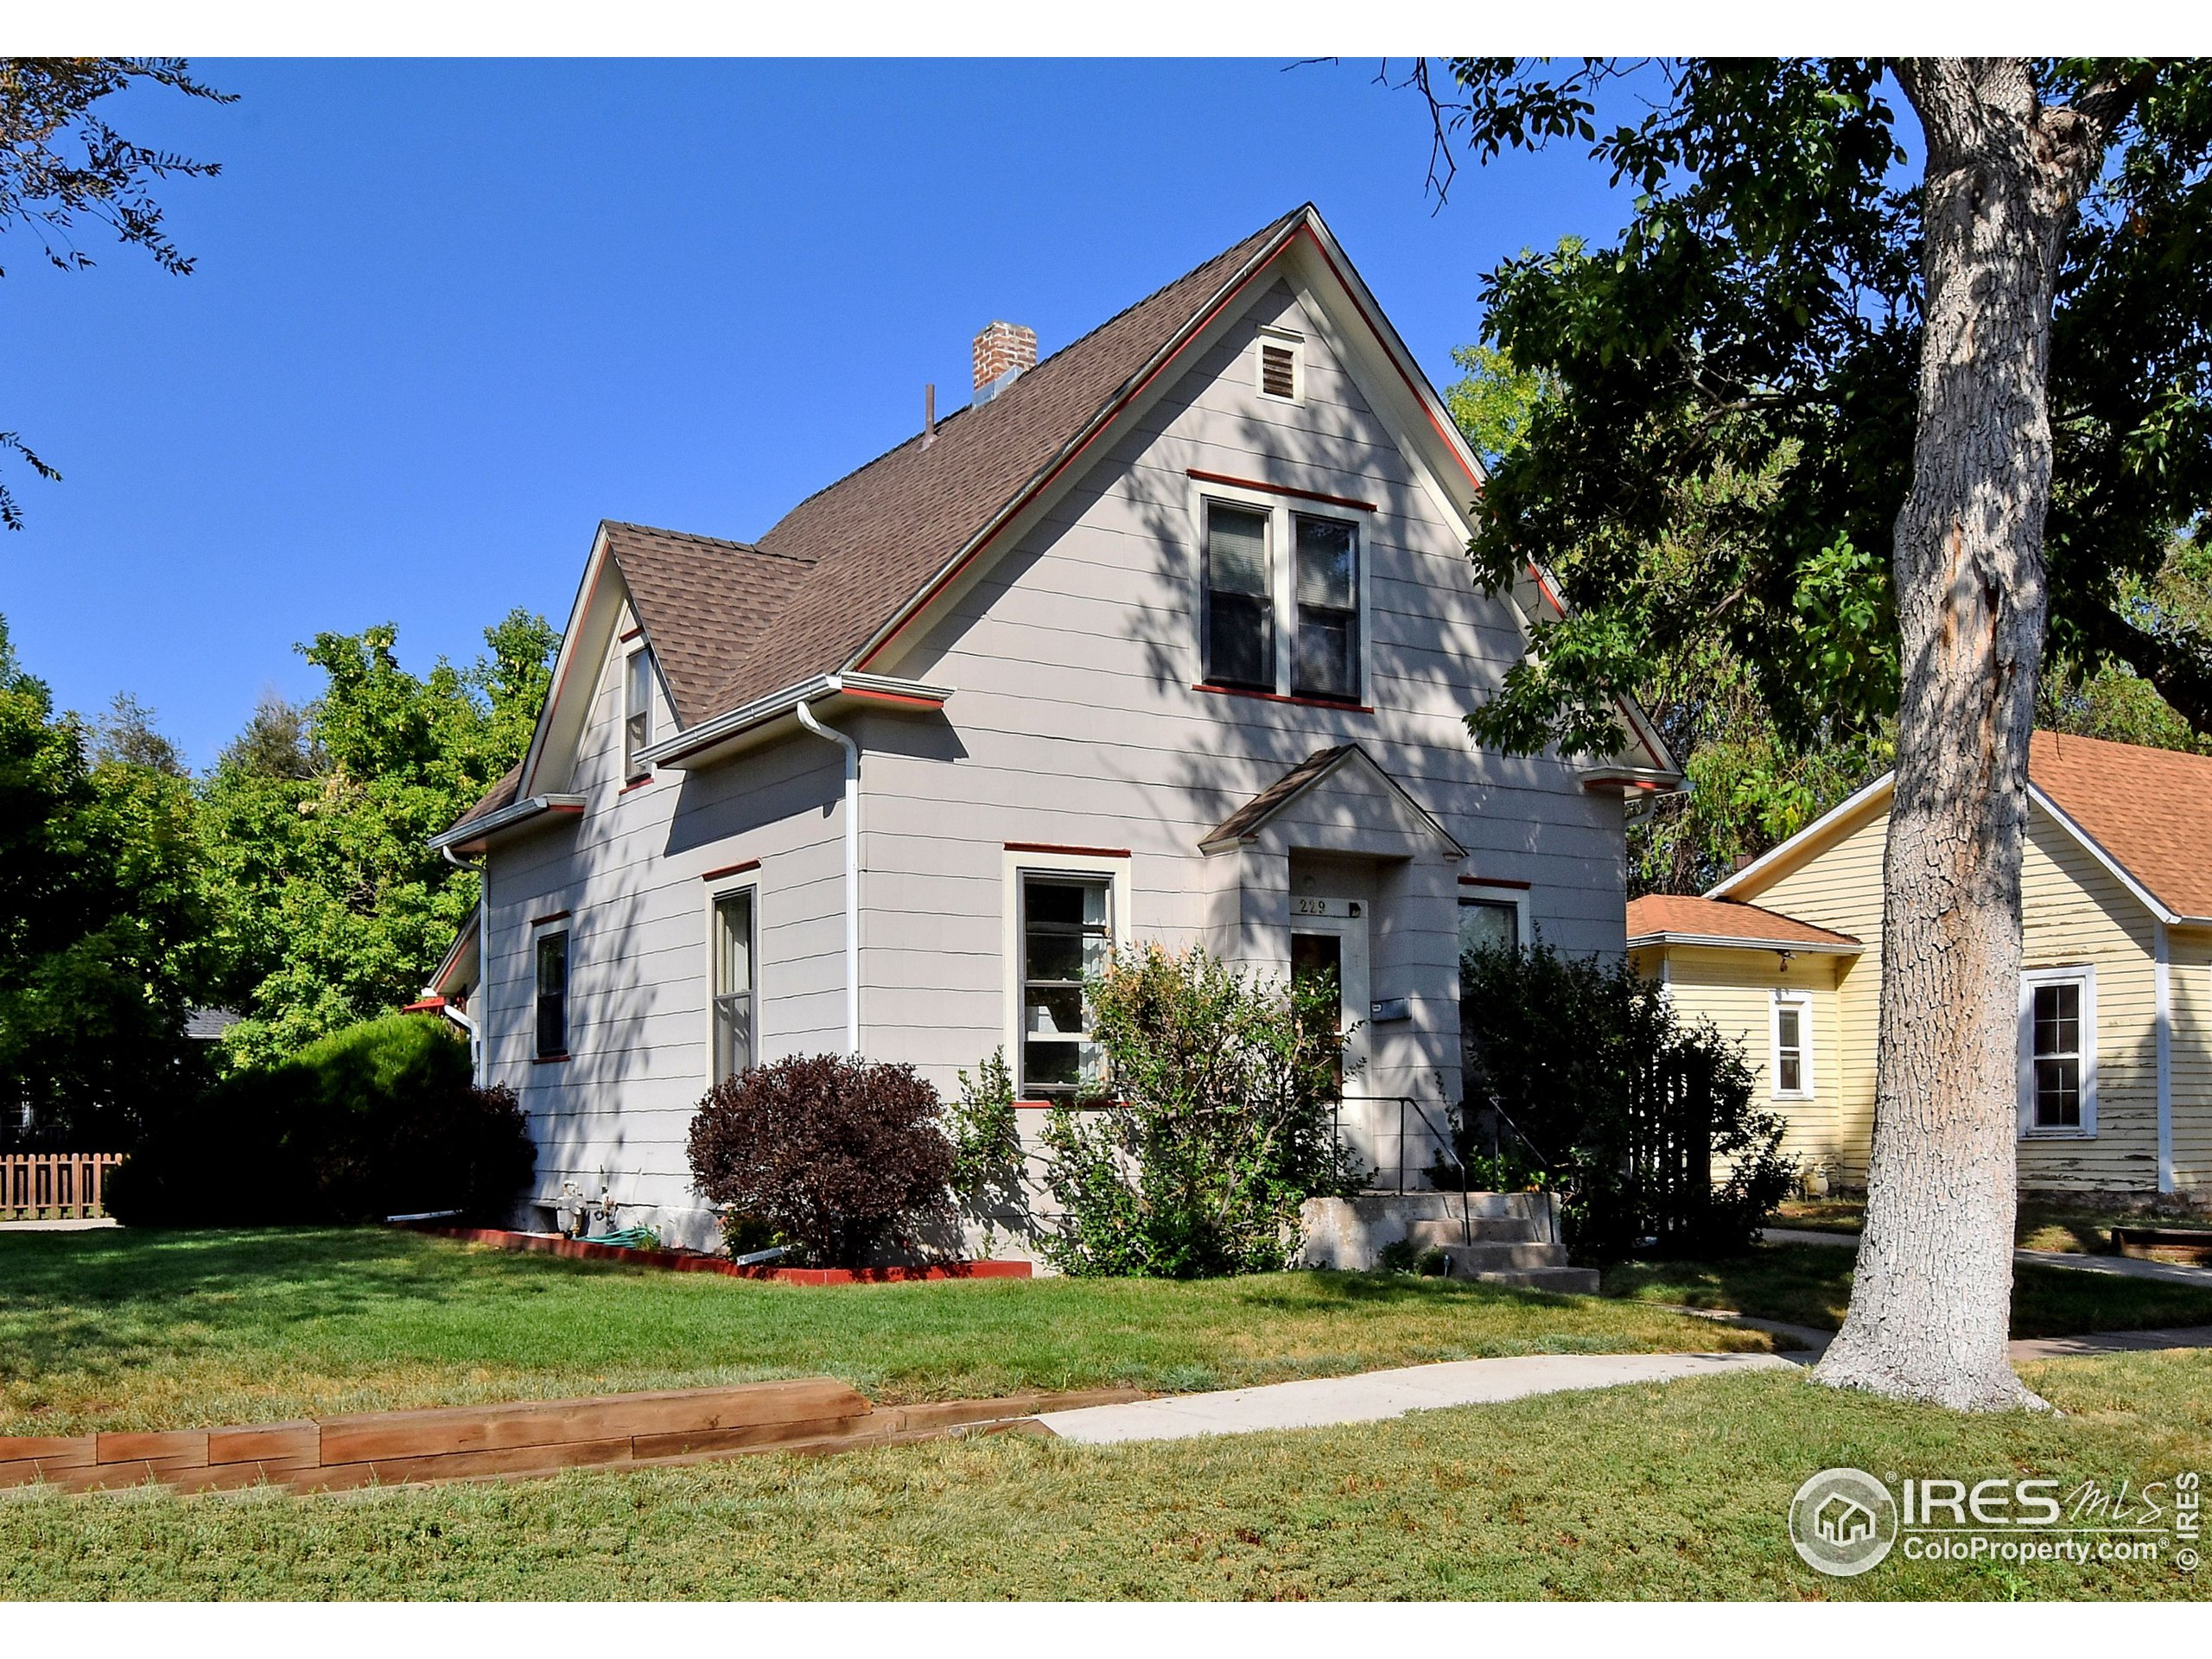 229 Smith St, Fort Collins, CO 80524